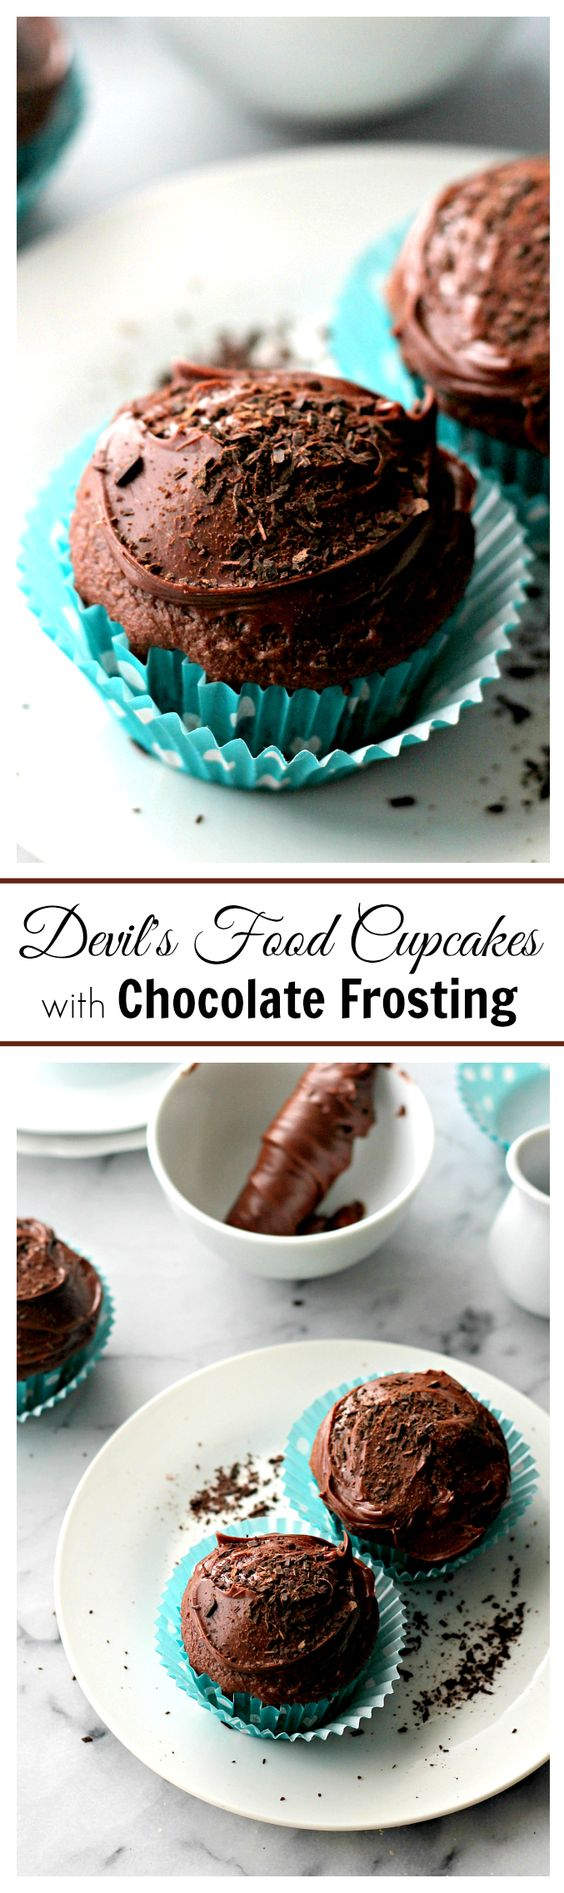 Devil's Food Cupcakes with Chocolate Frosting | Recipe | Devil, Baking ...